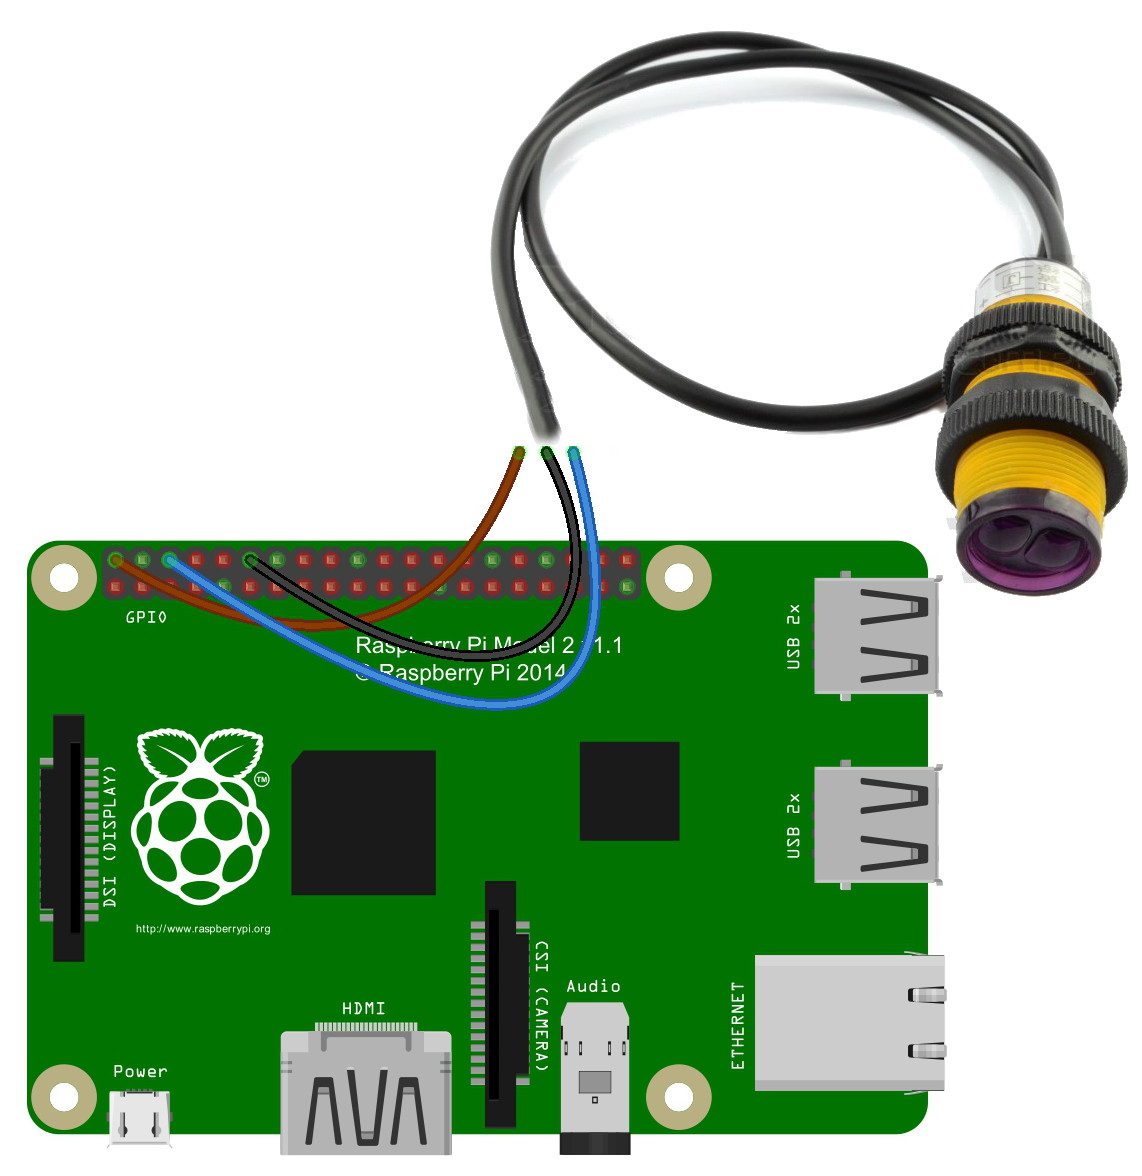 Distance measurement using Raspberry Pi and sensor E18-D80NK